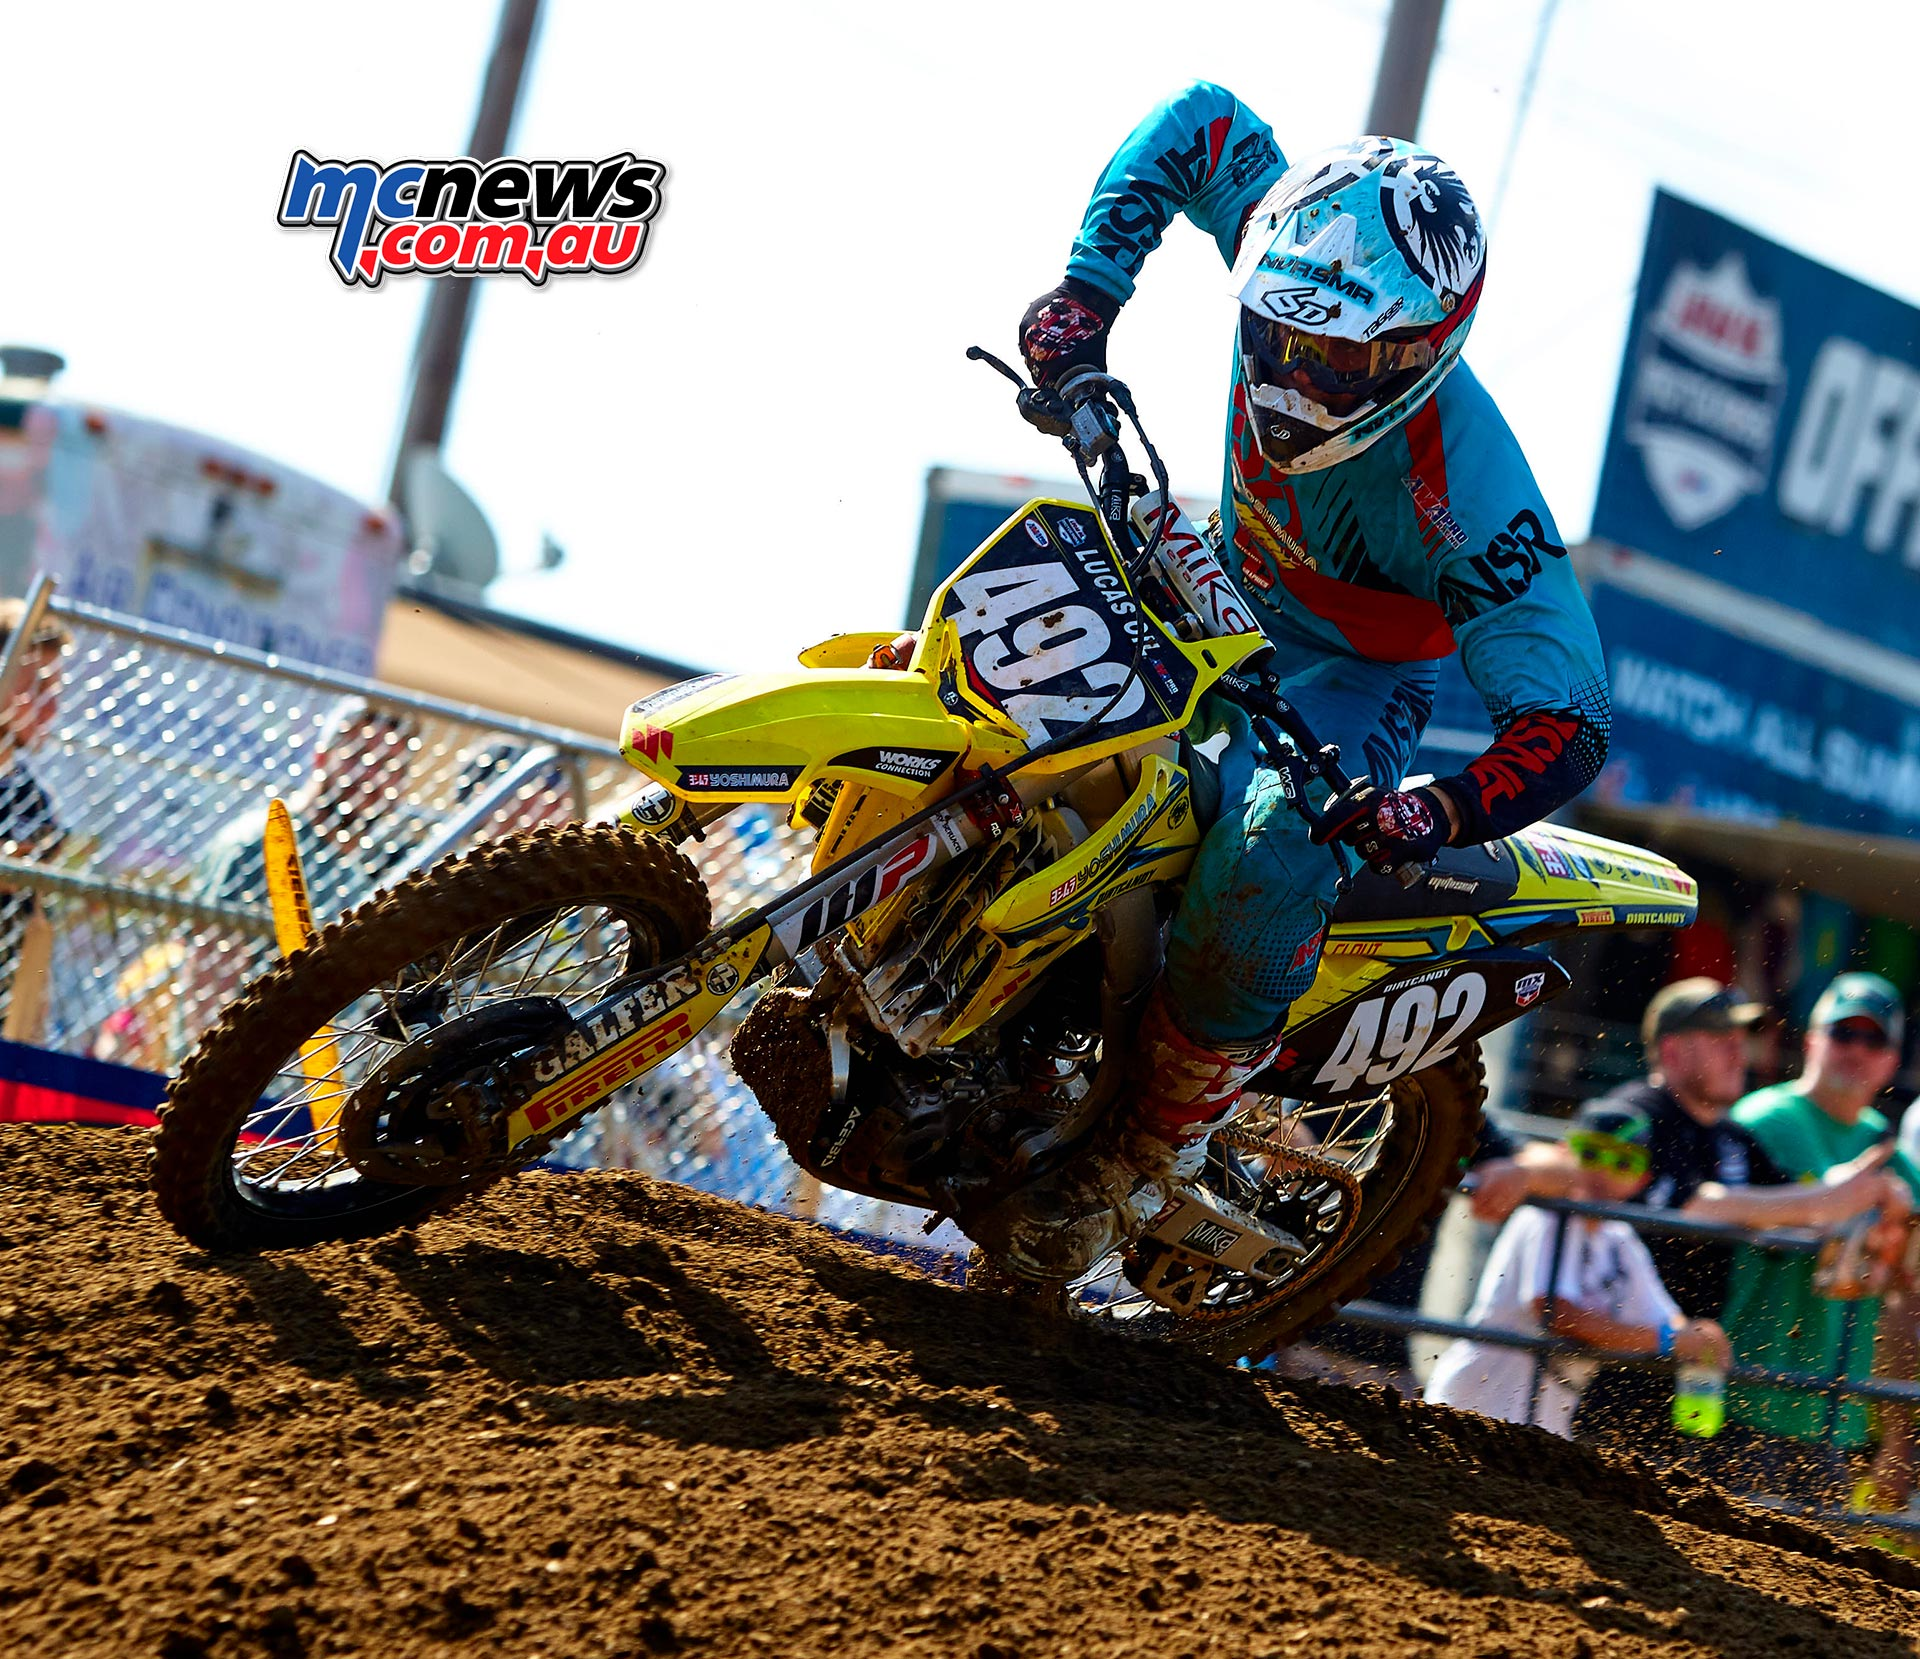 AMA Pro Motocross 2016 - Round 11 - Budds Creek - Image by Hoppenworld - Luke Clout